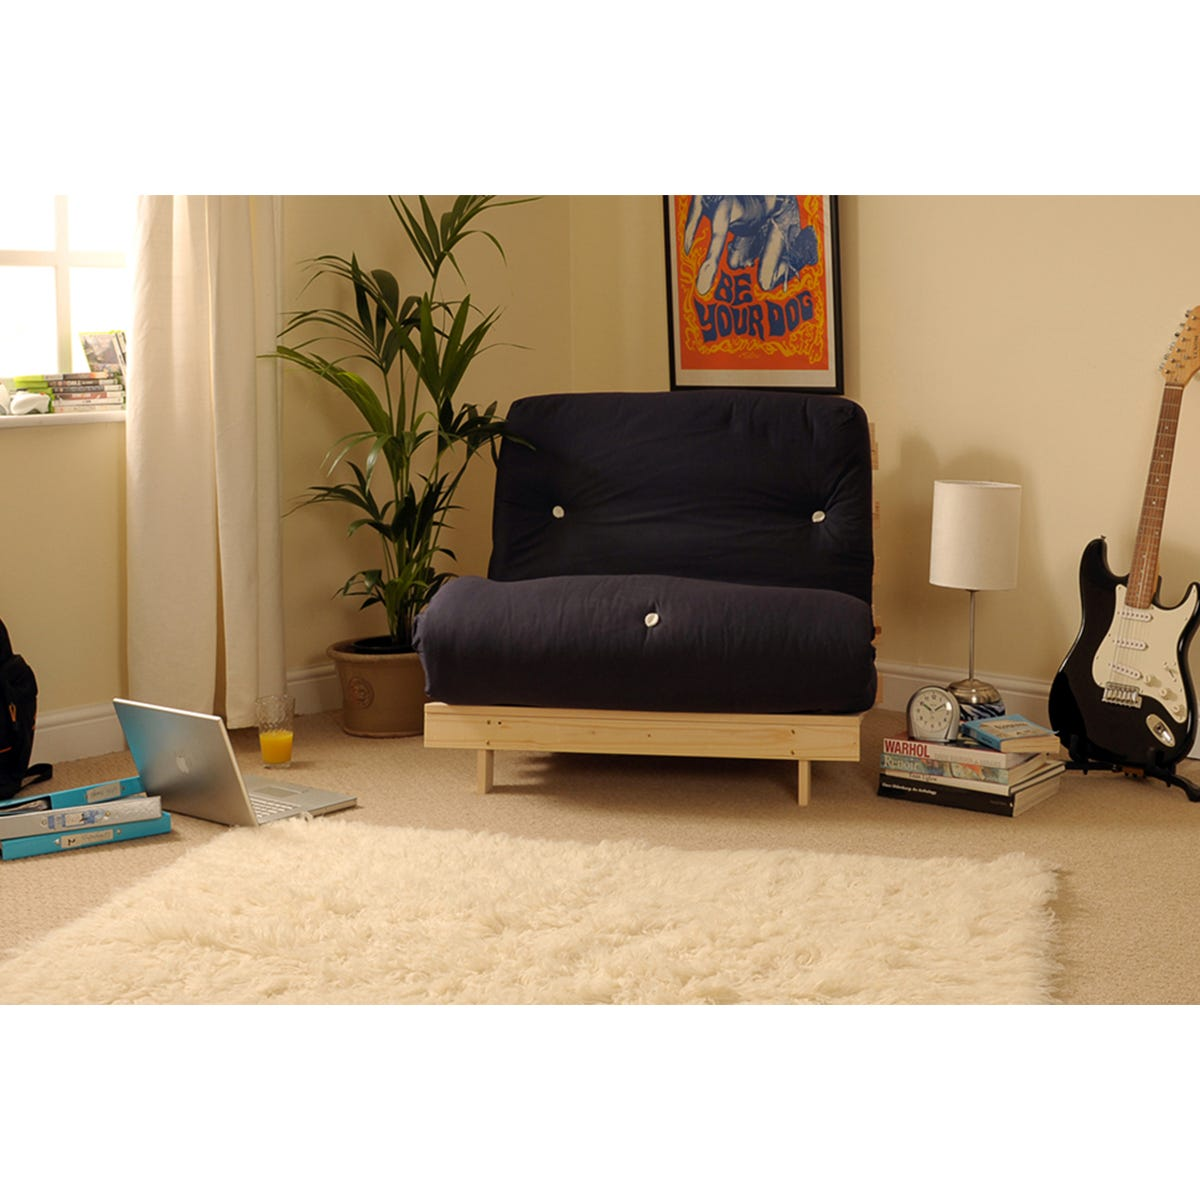 Albury Small Double Sofa Bed Set With Tufted Mattress - Black